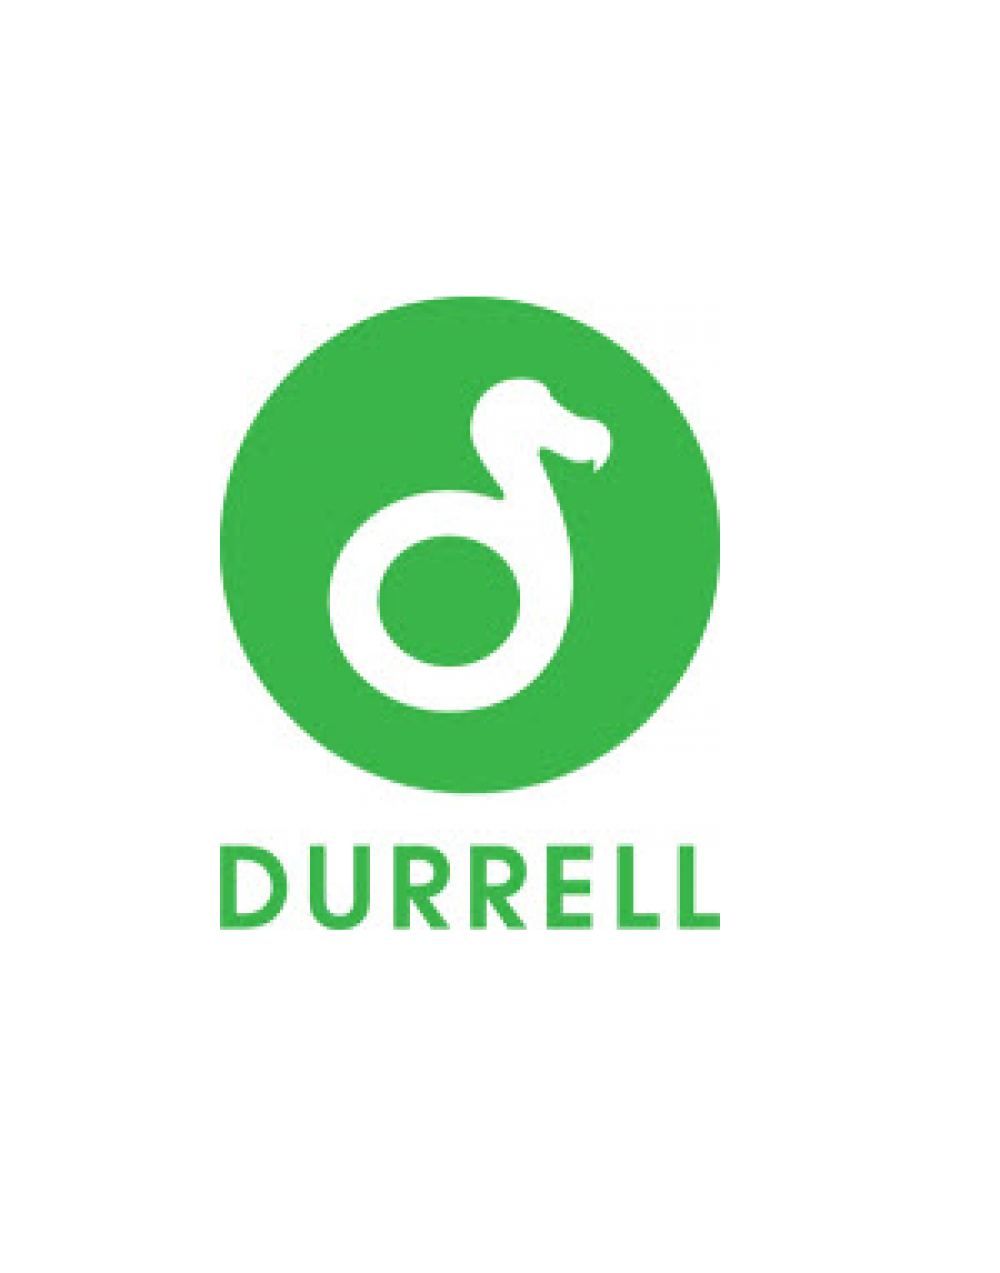 Durrell canvas